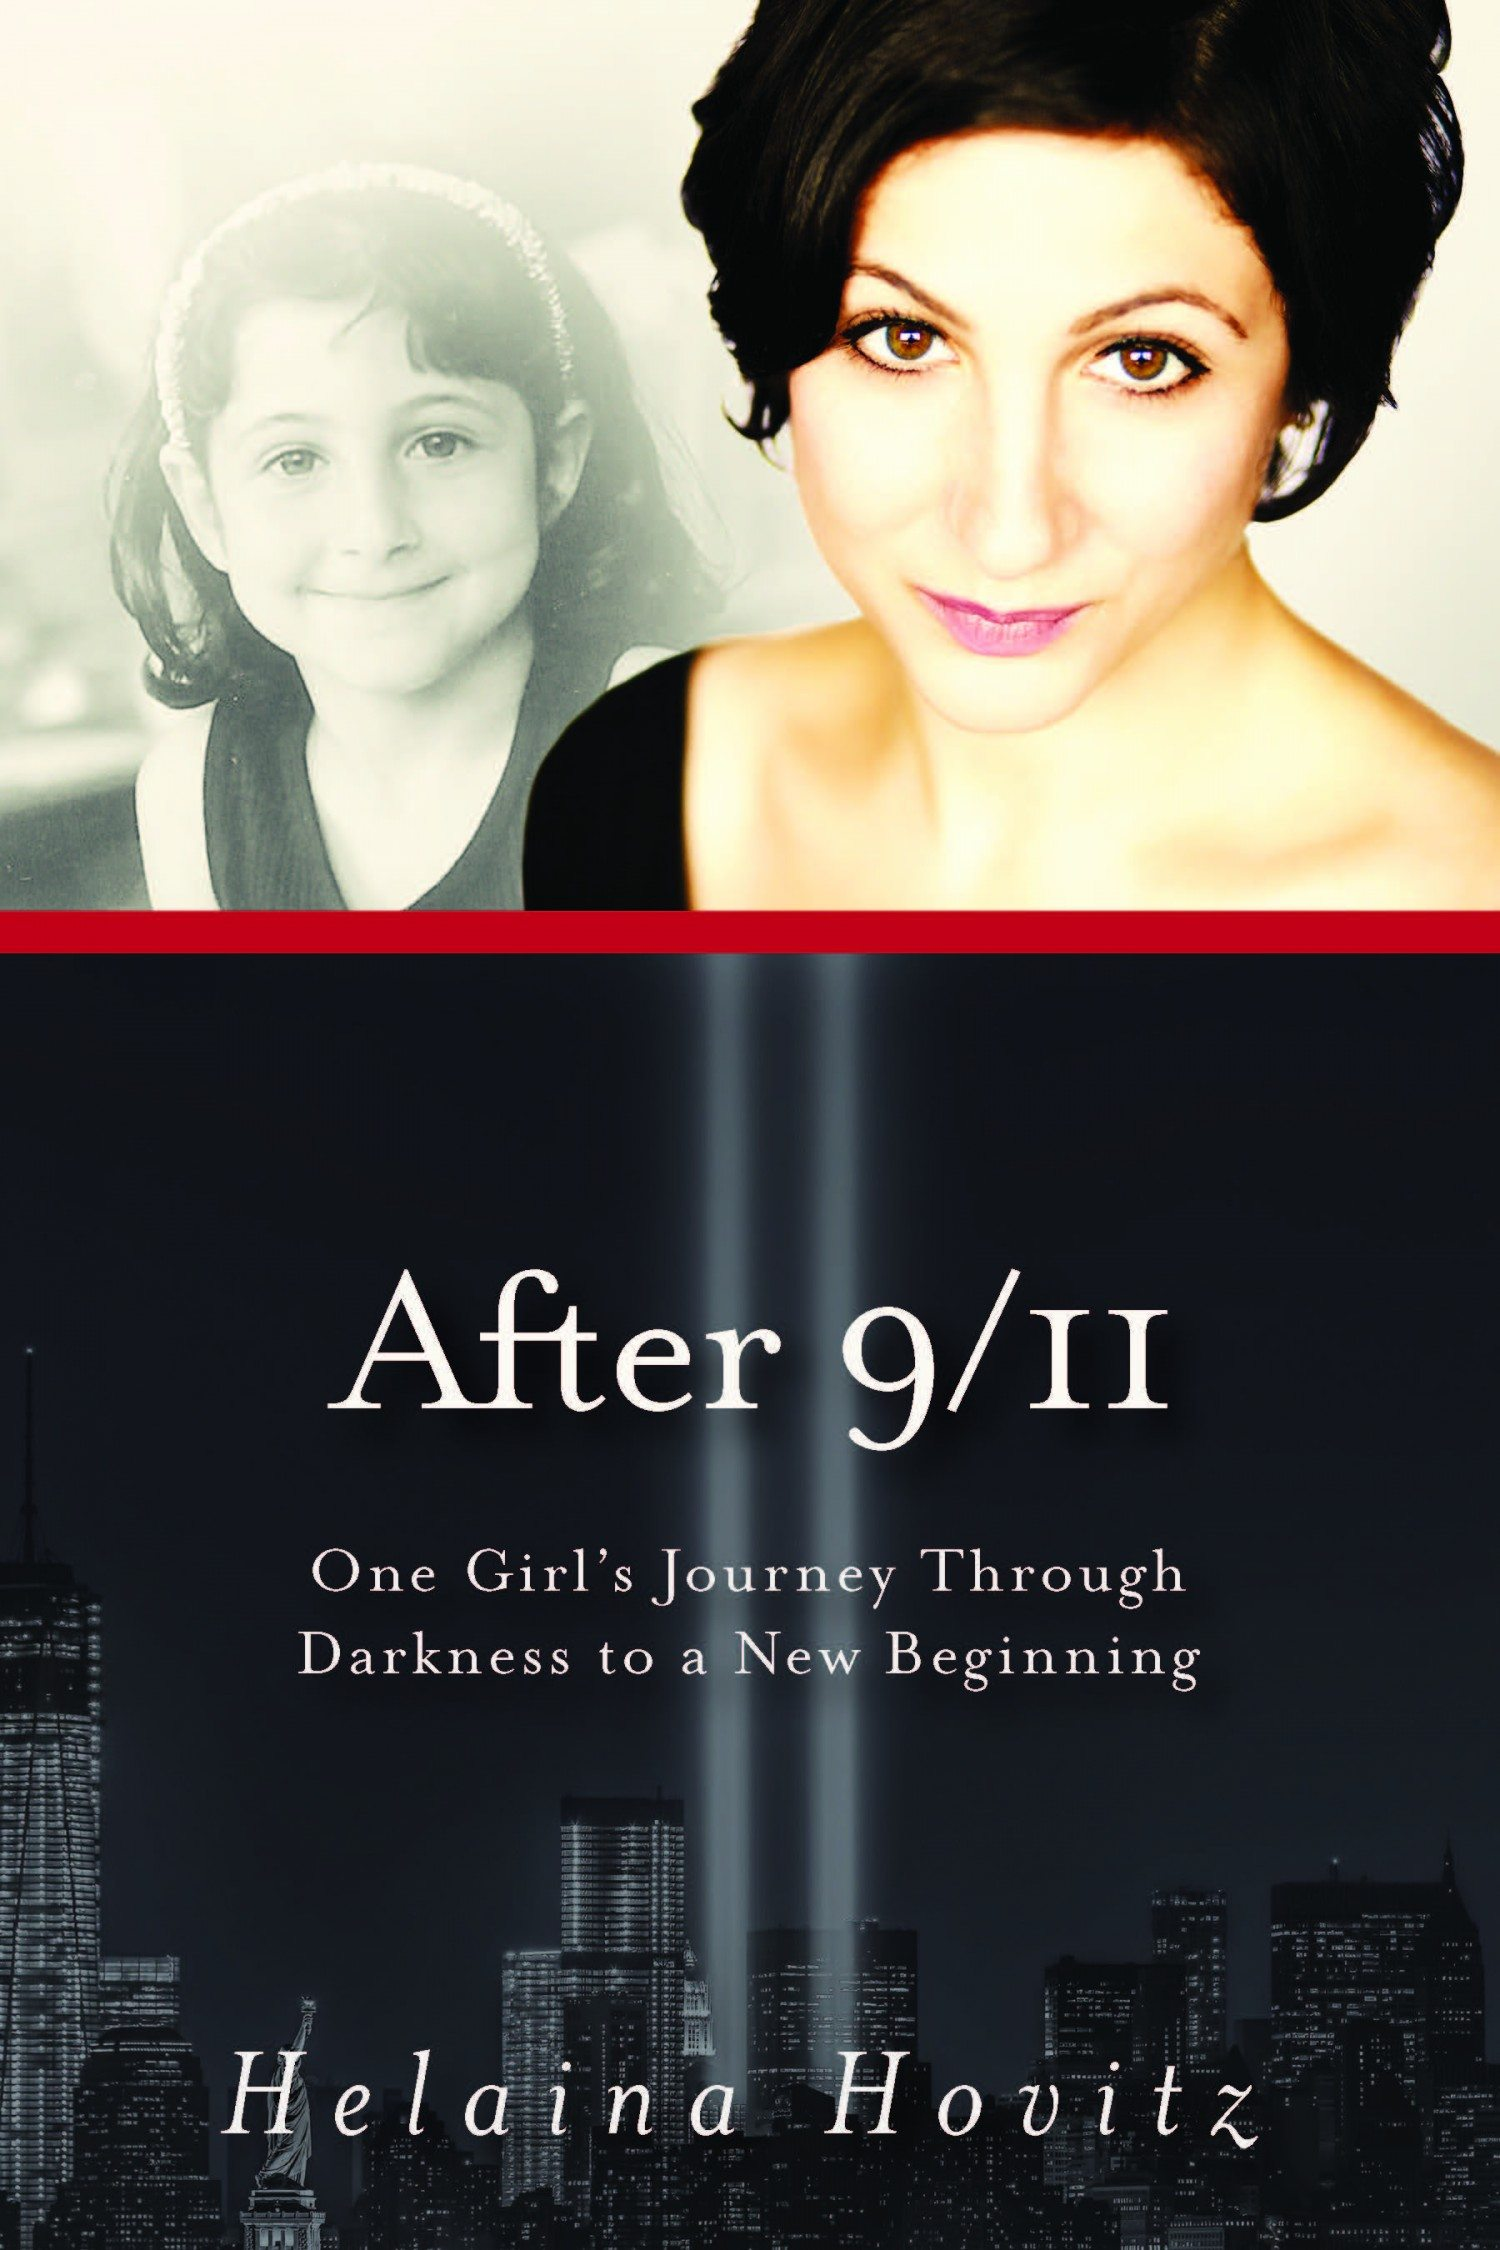 After 9-11